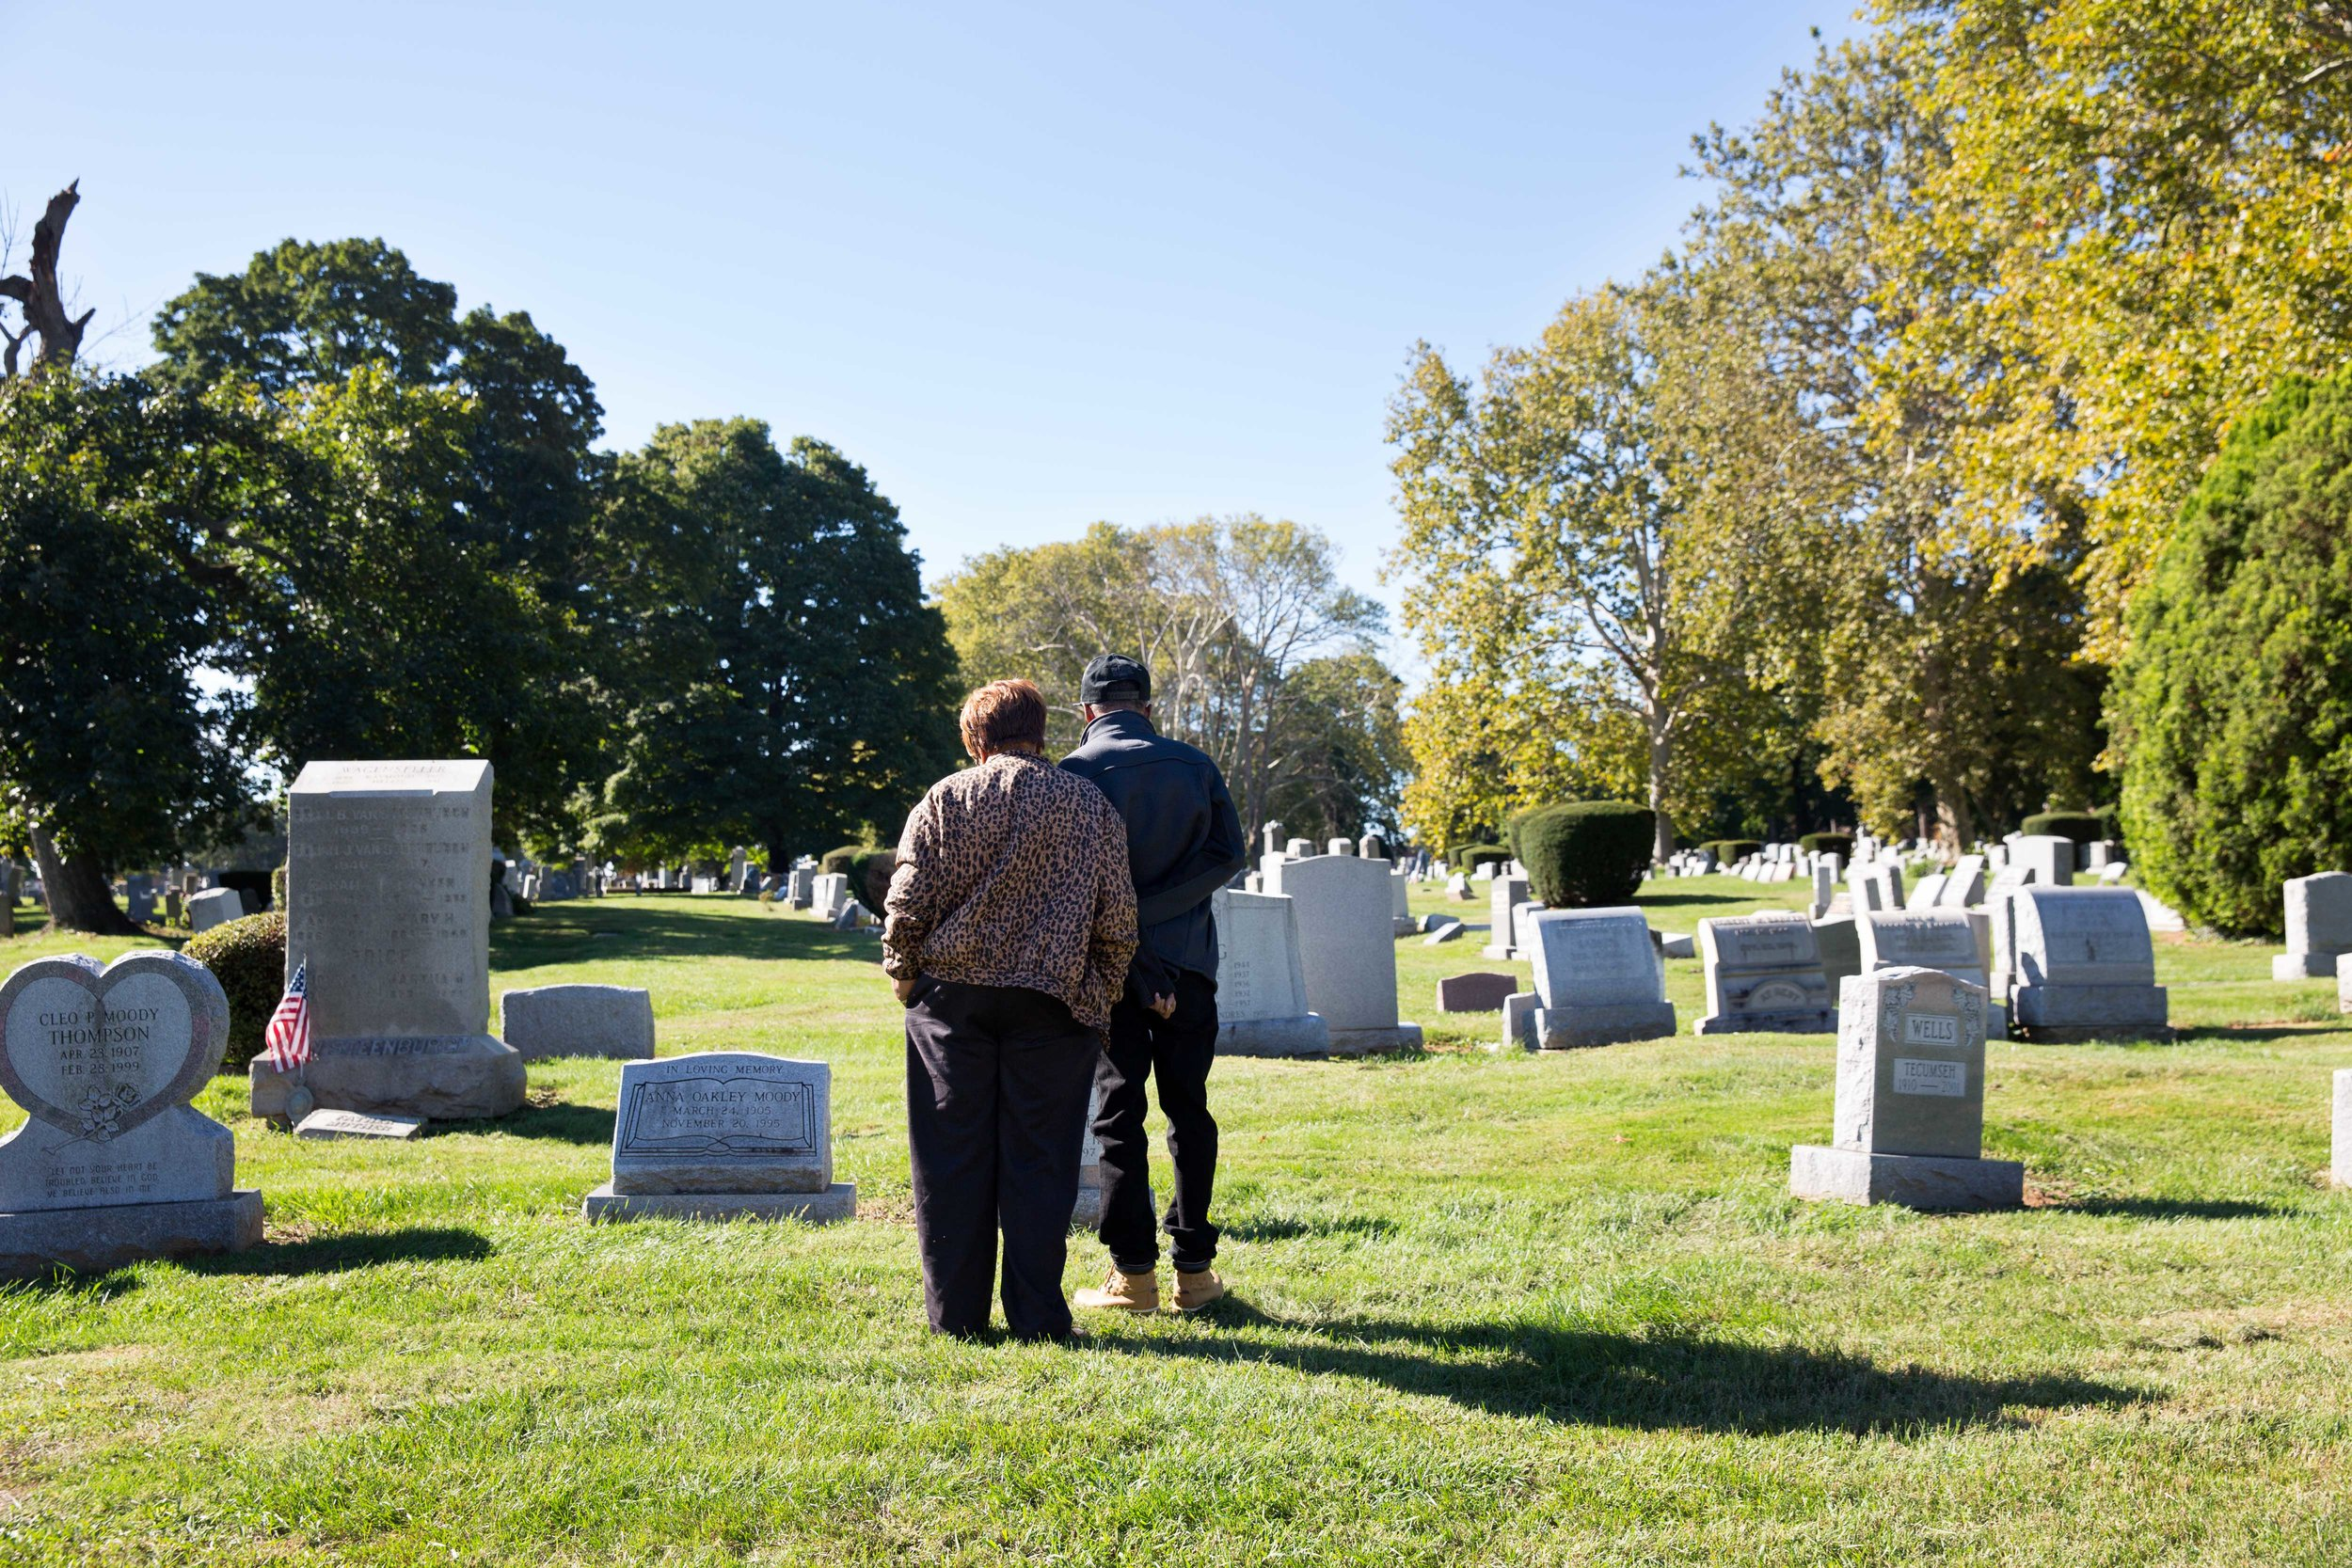 """Ronald and his mother Willie Mae visit his grandmother Sallie (""""Big Grandmama"""")'s grave who helped raise him in Alabama. Big Grandmama passed away in 1997 at the age of 78, which is a year younger than Willie Mae is now. Elston regrets not being able to attend her funeral."""